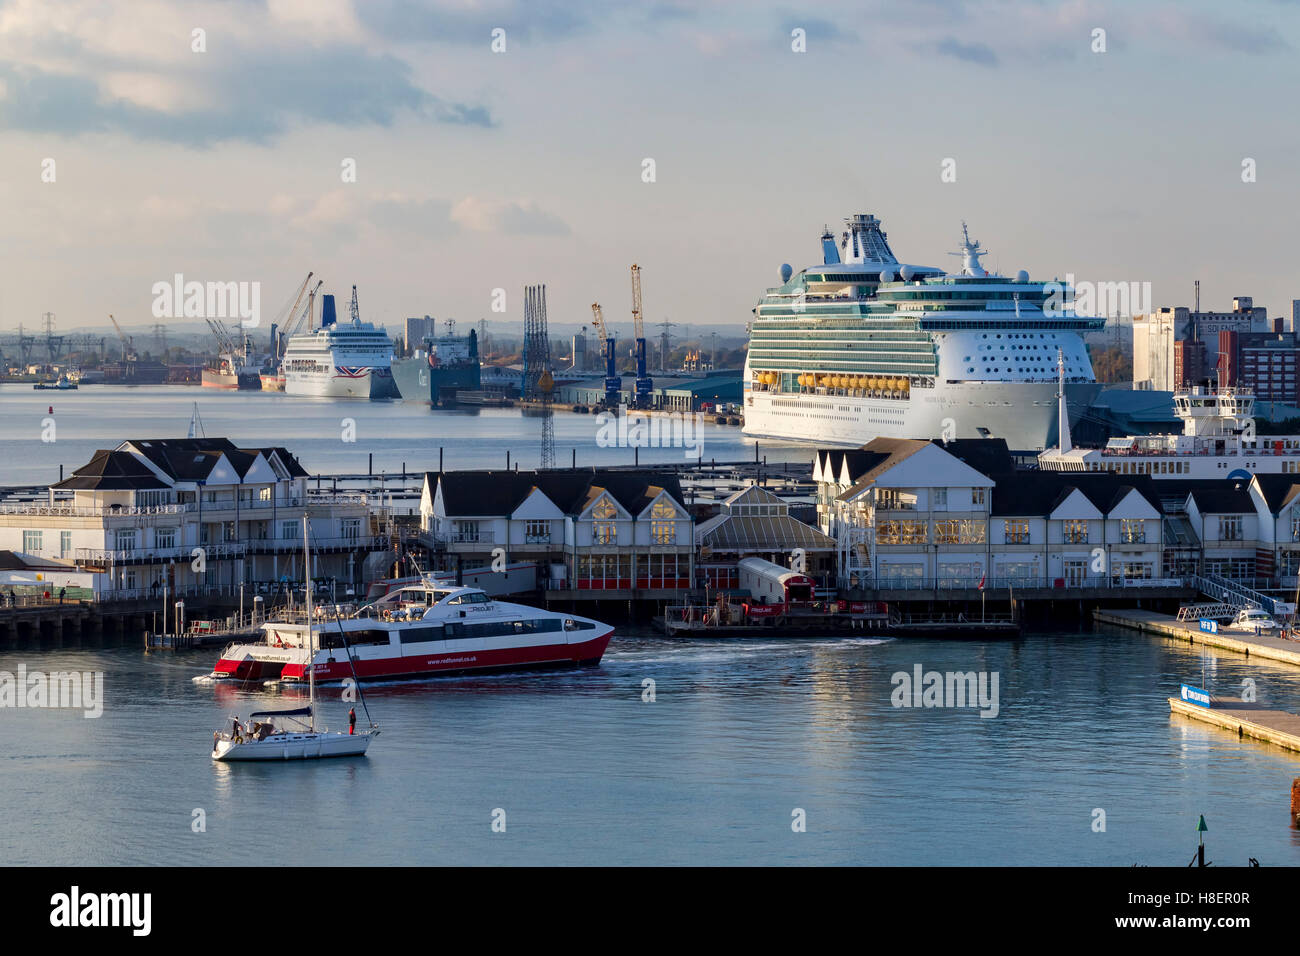 Royal Caribbeans Navigator of the seas and P&O Oriana moored in Southampton Docks. - Stock Image